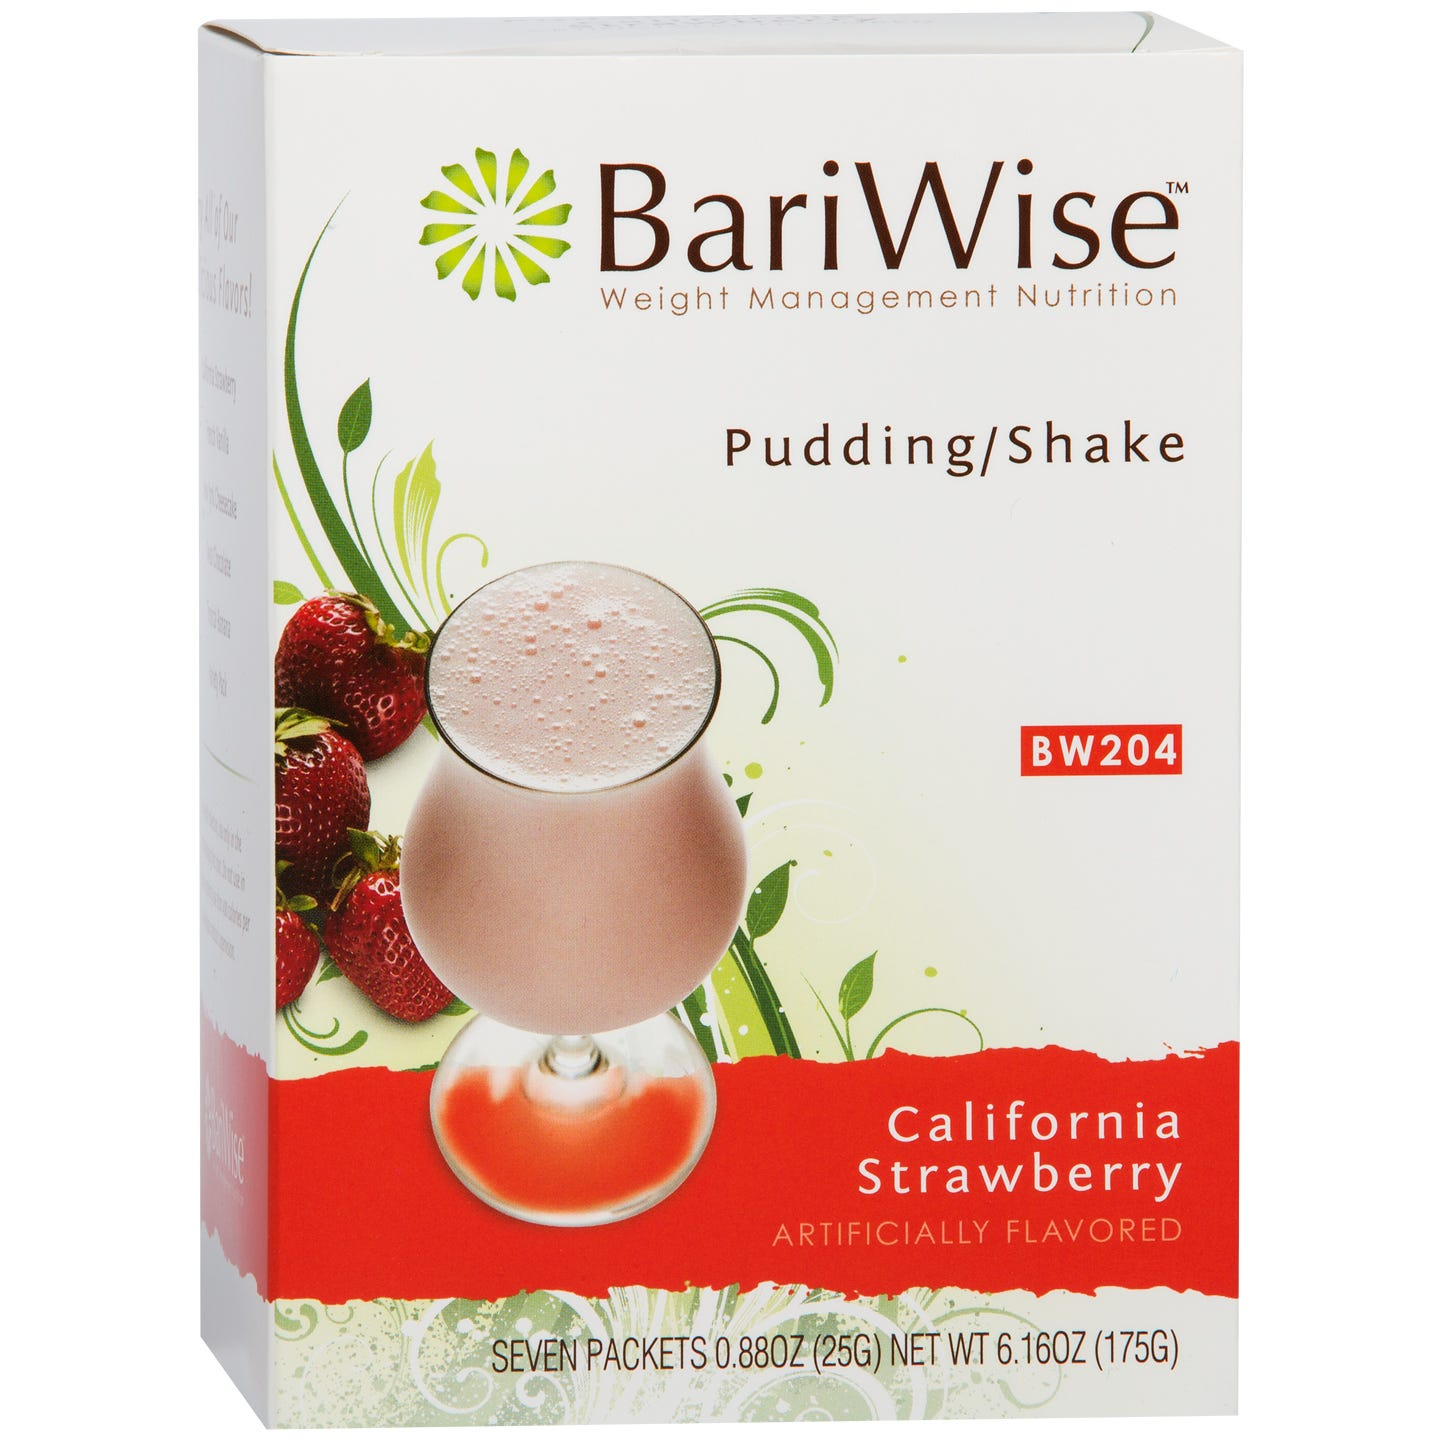 Protein Diet Pudding/Shake California Strawberry (7 Ct) - BariWise